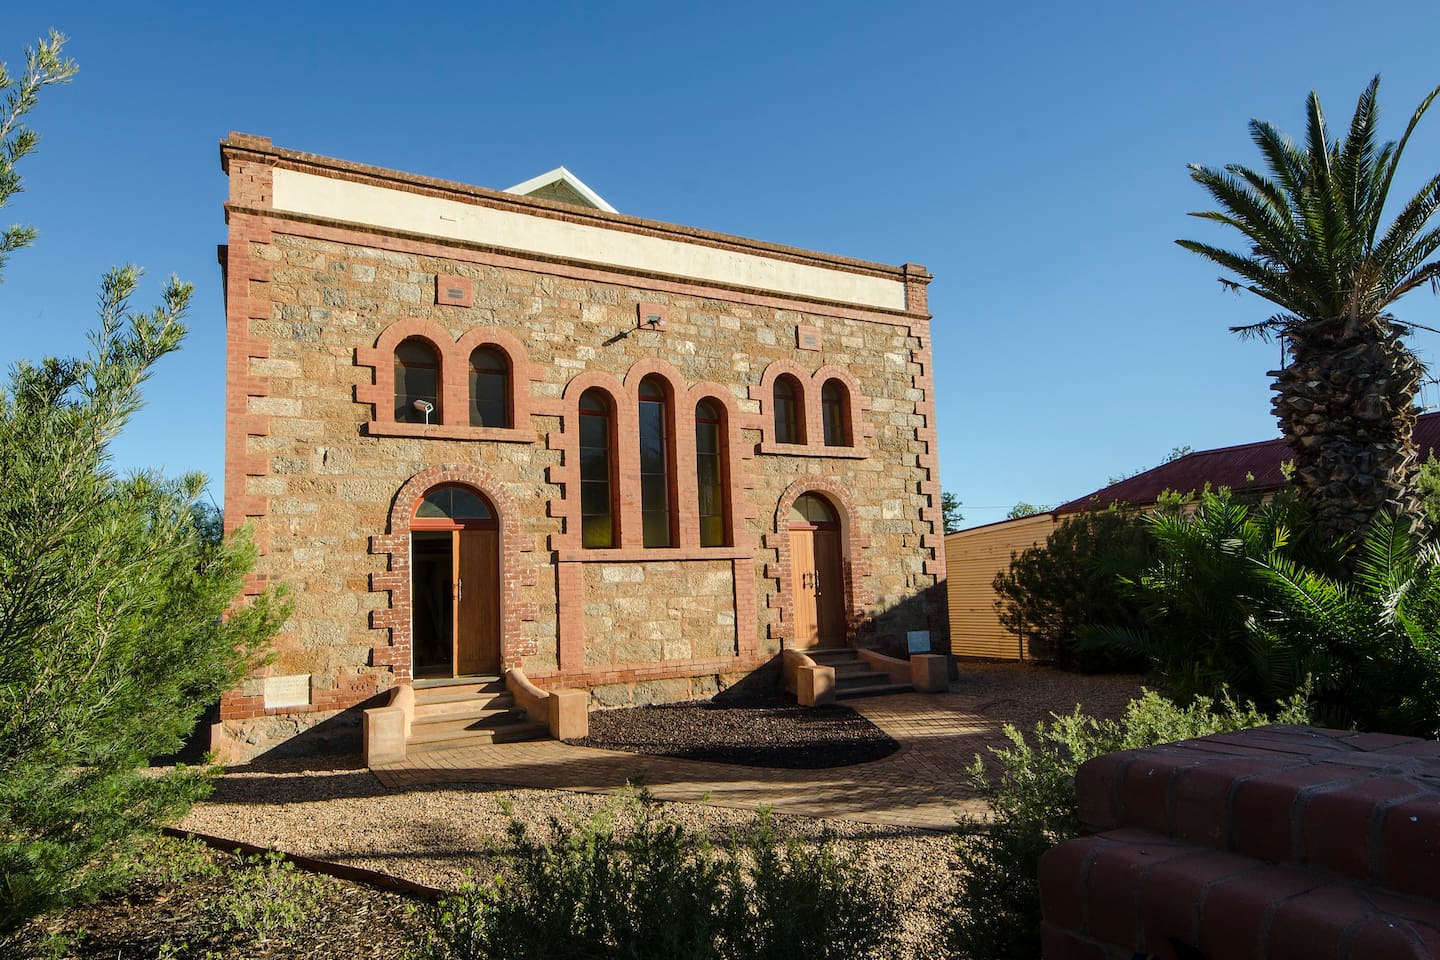 Outback Church Stay. Front facade showing the 1911 inscribed white marble building plaques.